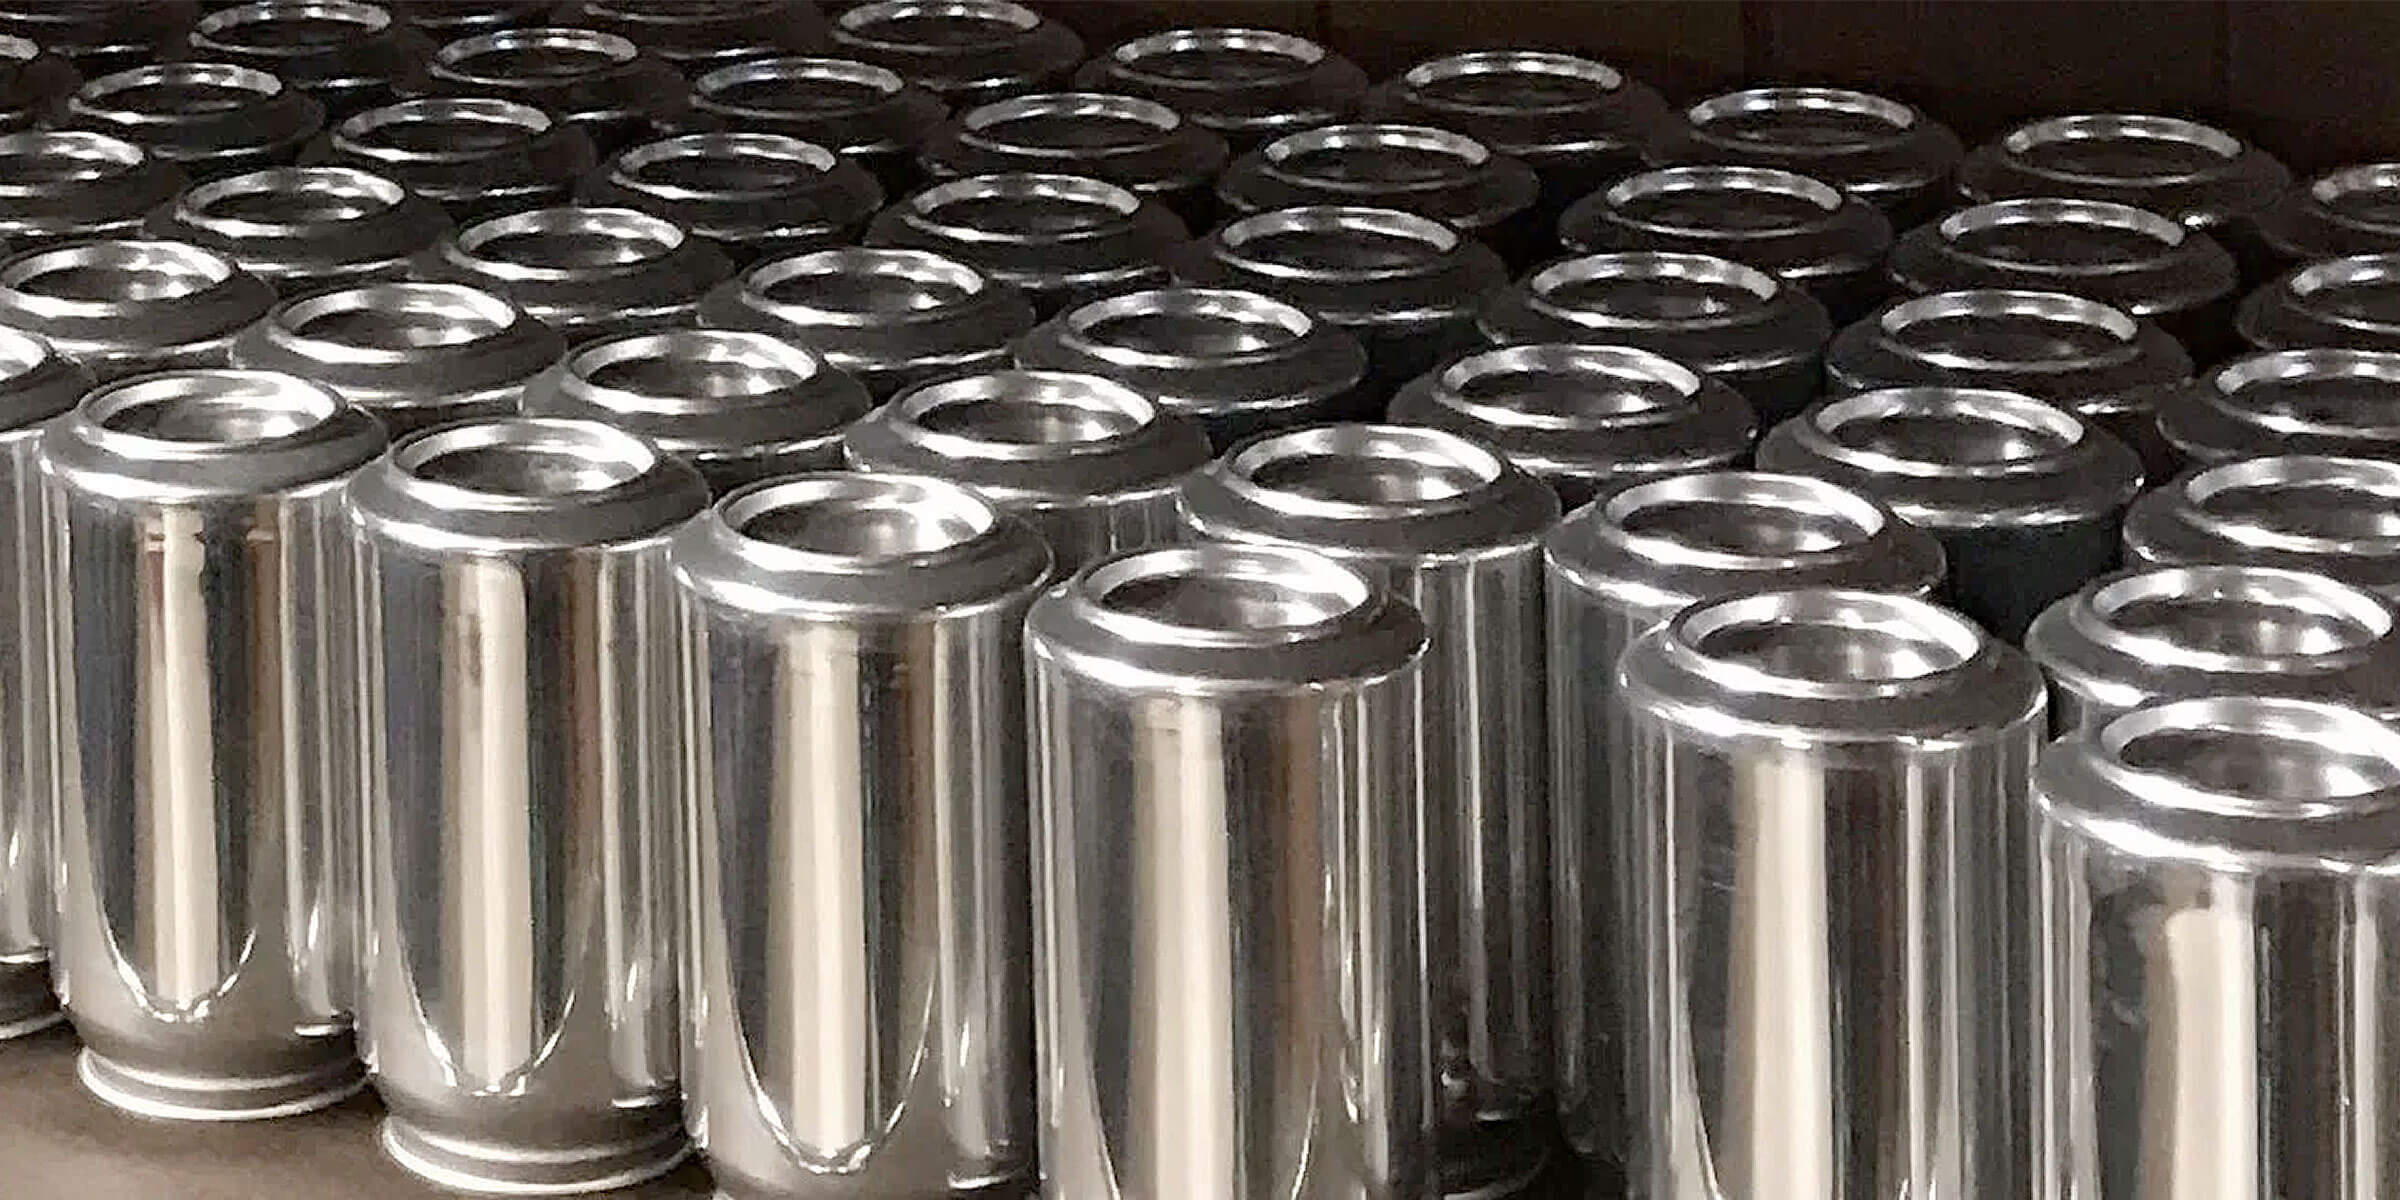 Rows of aluminum 16 oz. crowler cans